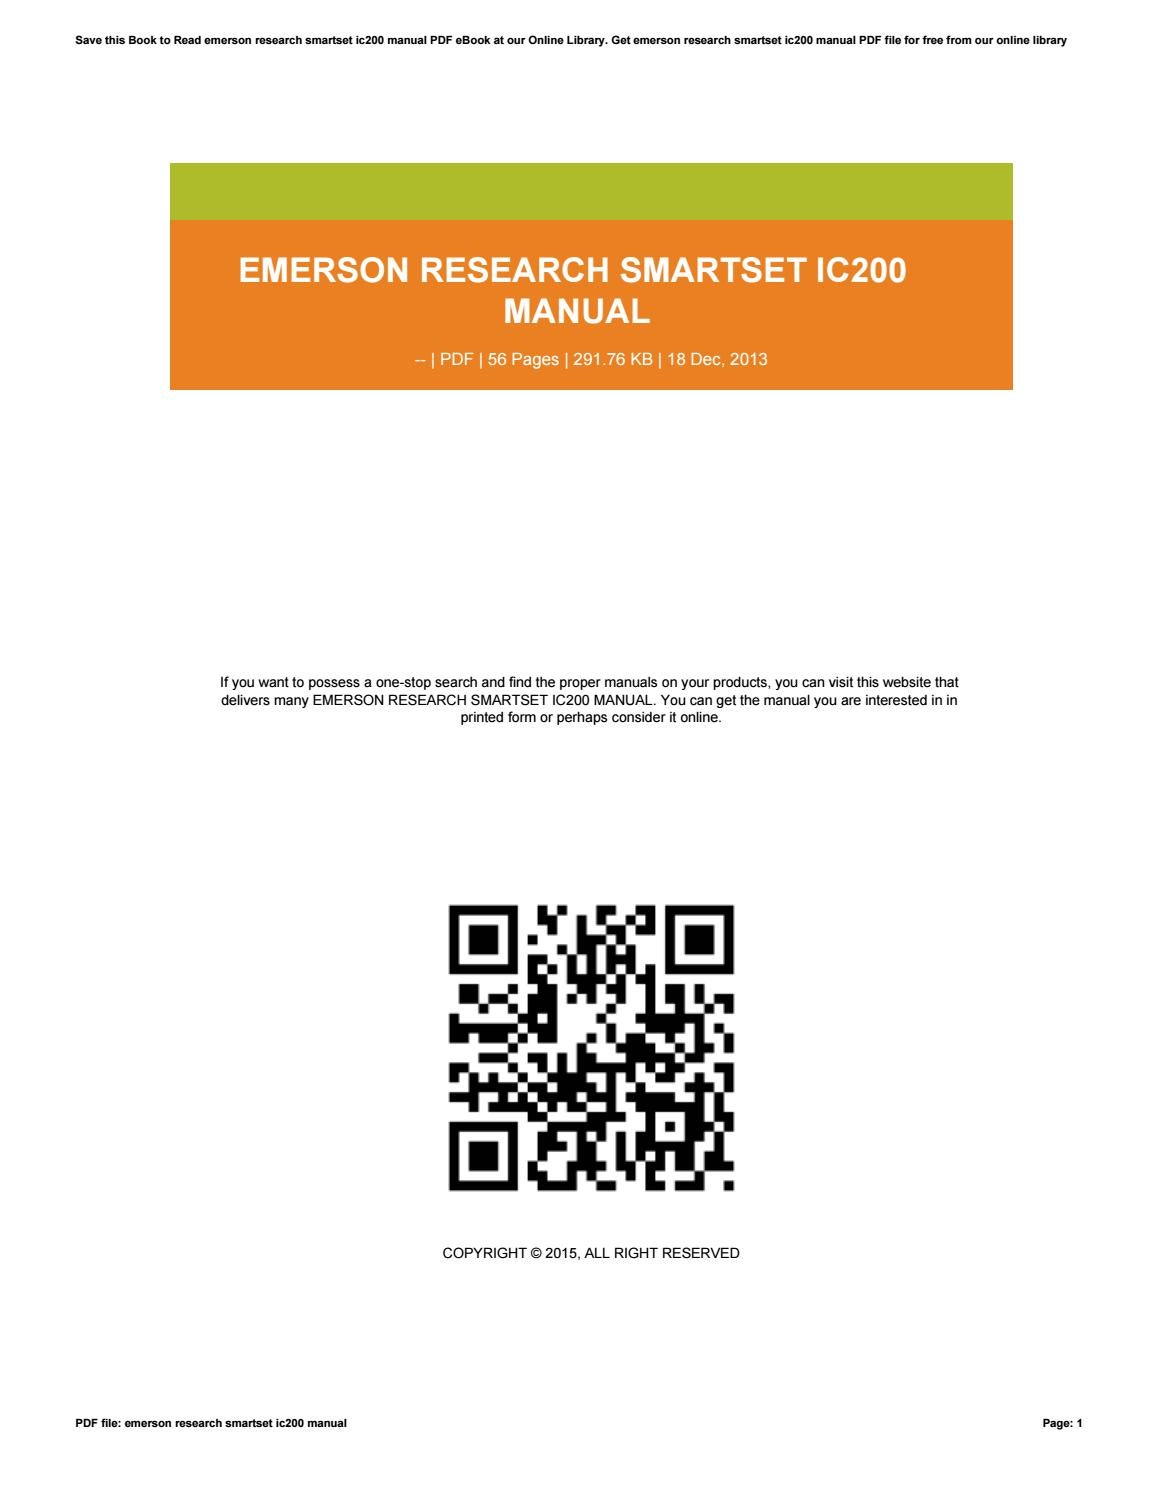 emerson research smartset ic200 manual by phpbb33 issuu rh issuu com Emerson iTone IC200 Ibanez Iceman IC200